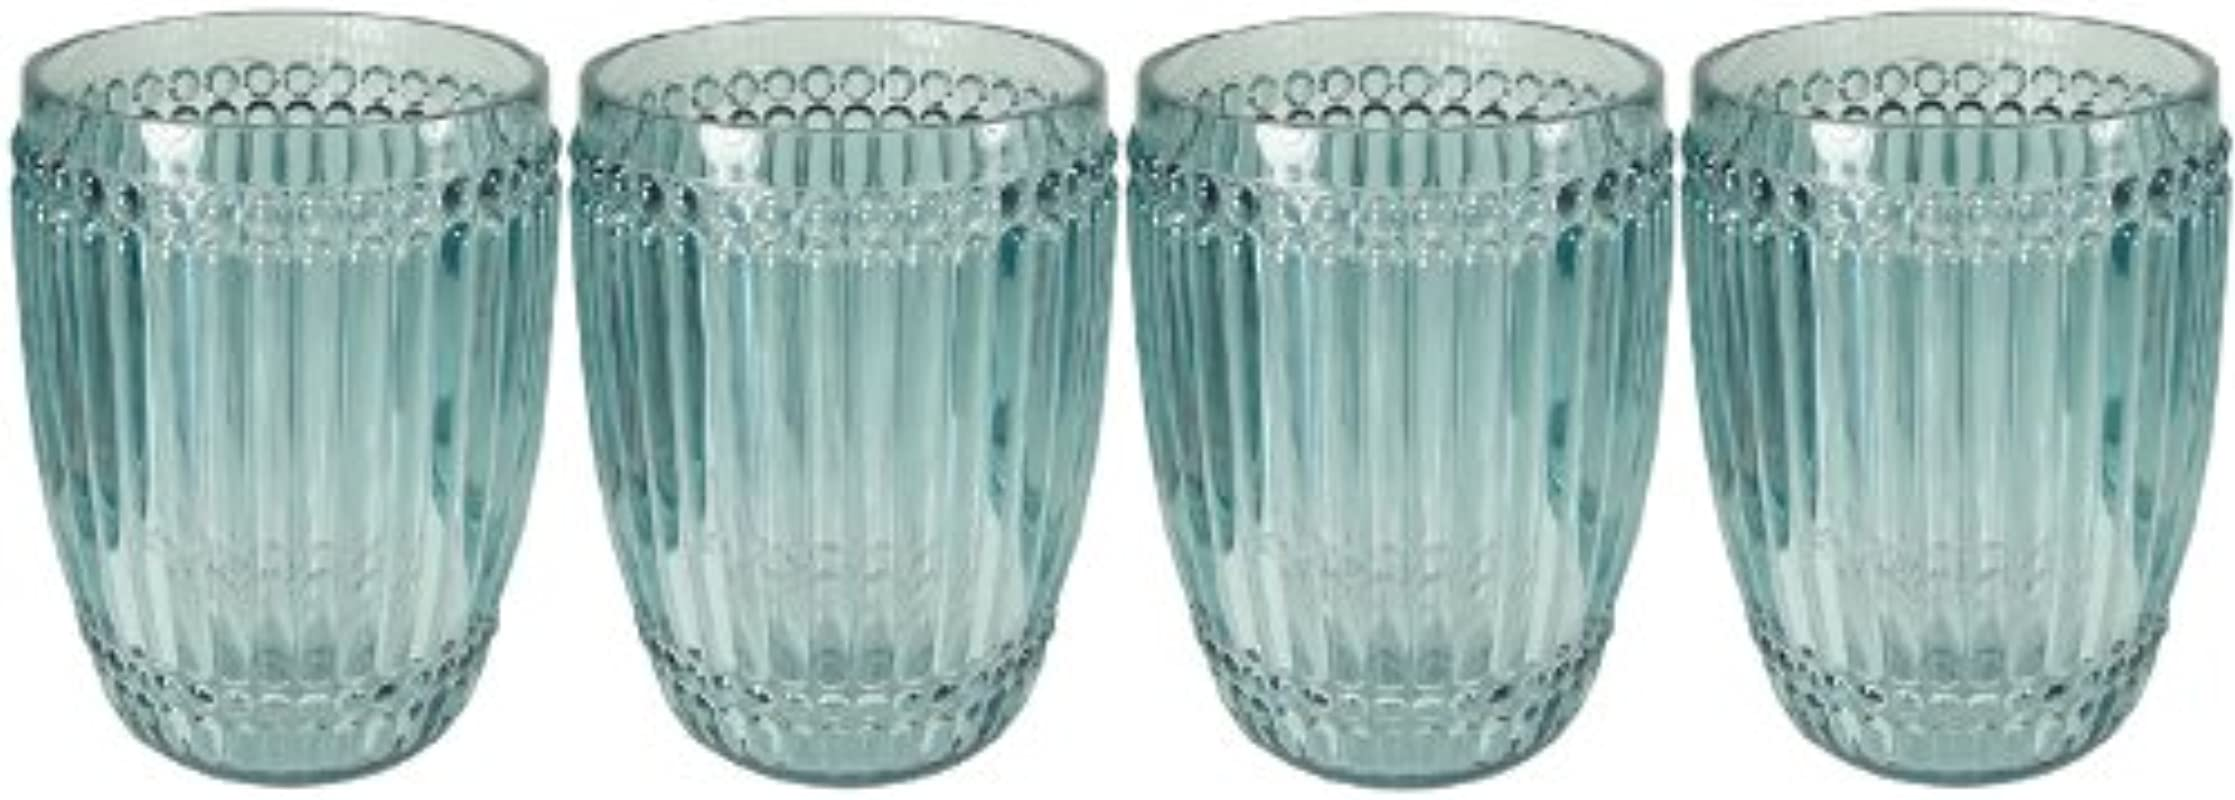 Le Cadeaux Milano Teal 4 Piece Shatter Proof Tumbler Glass Set